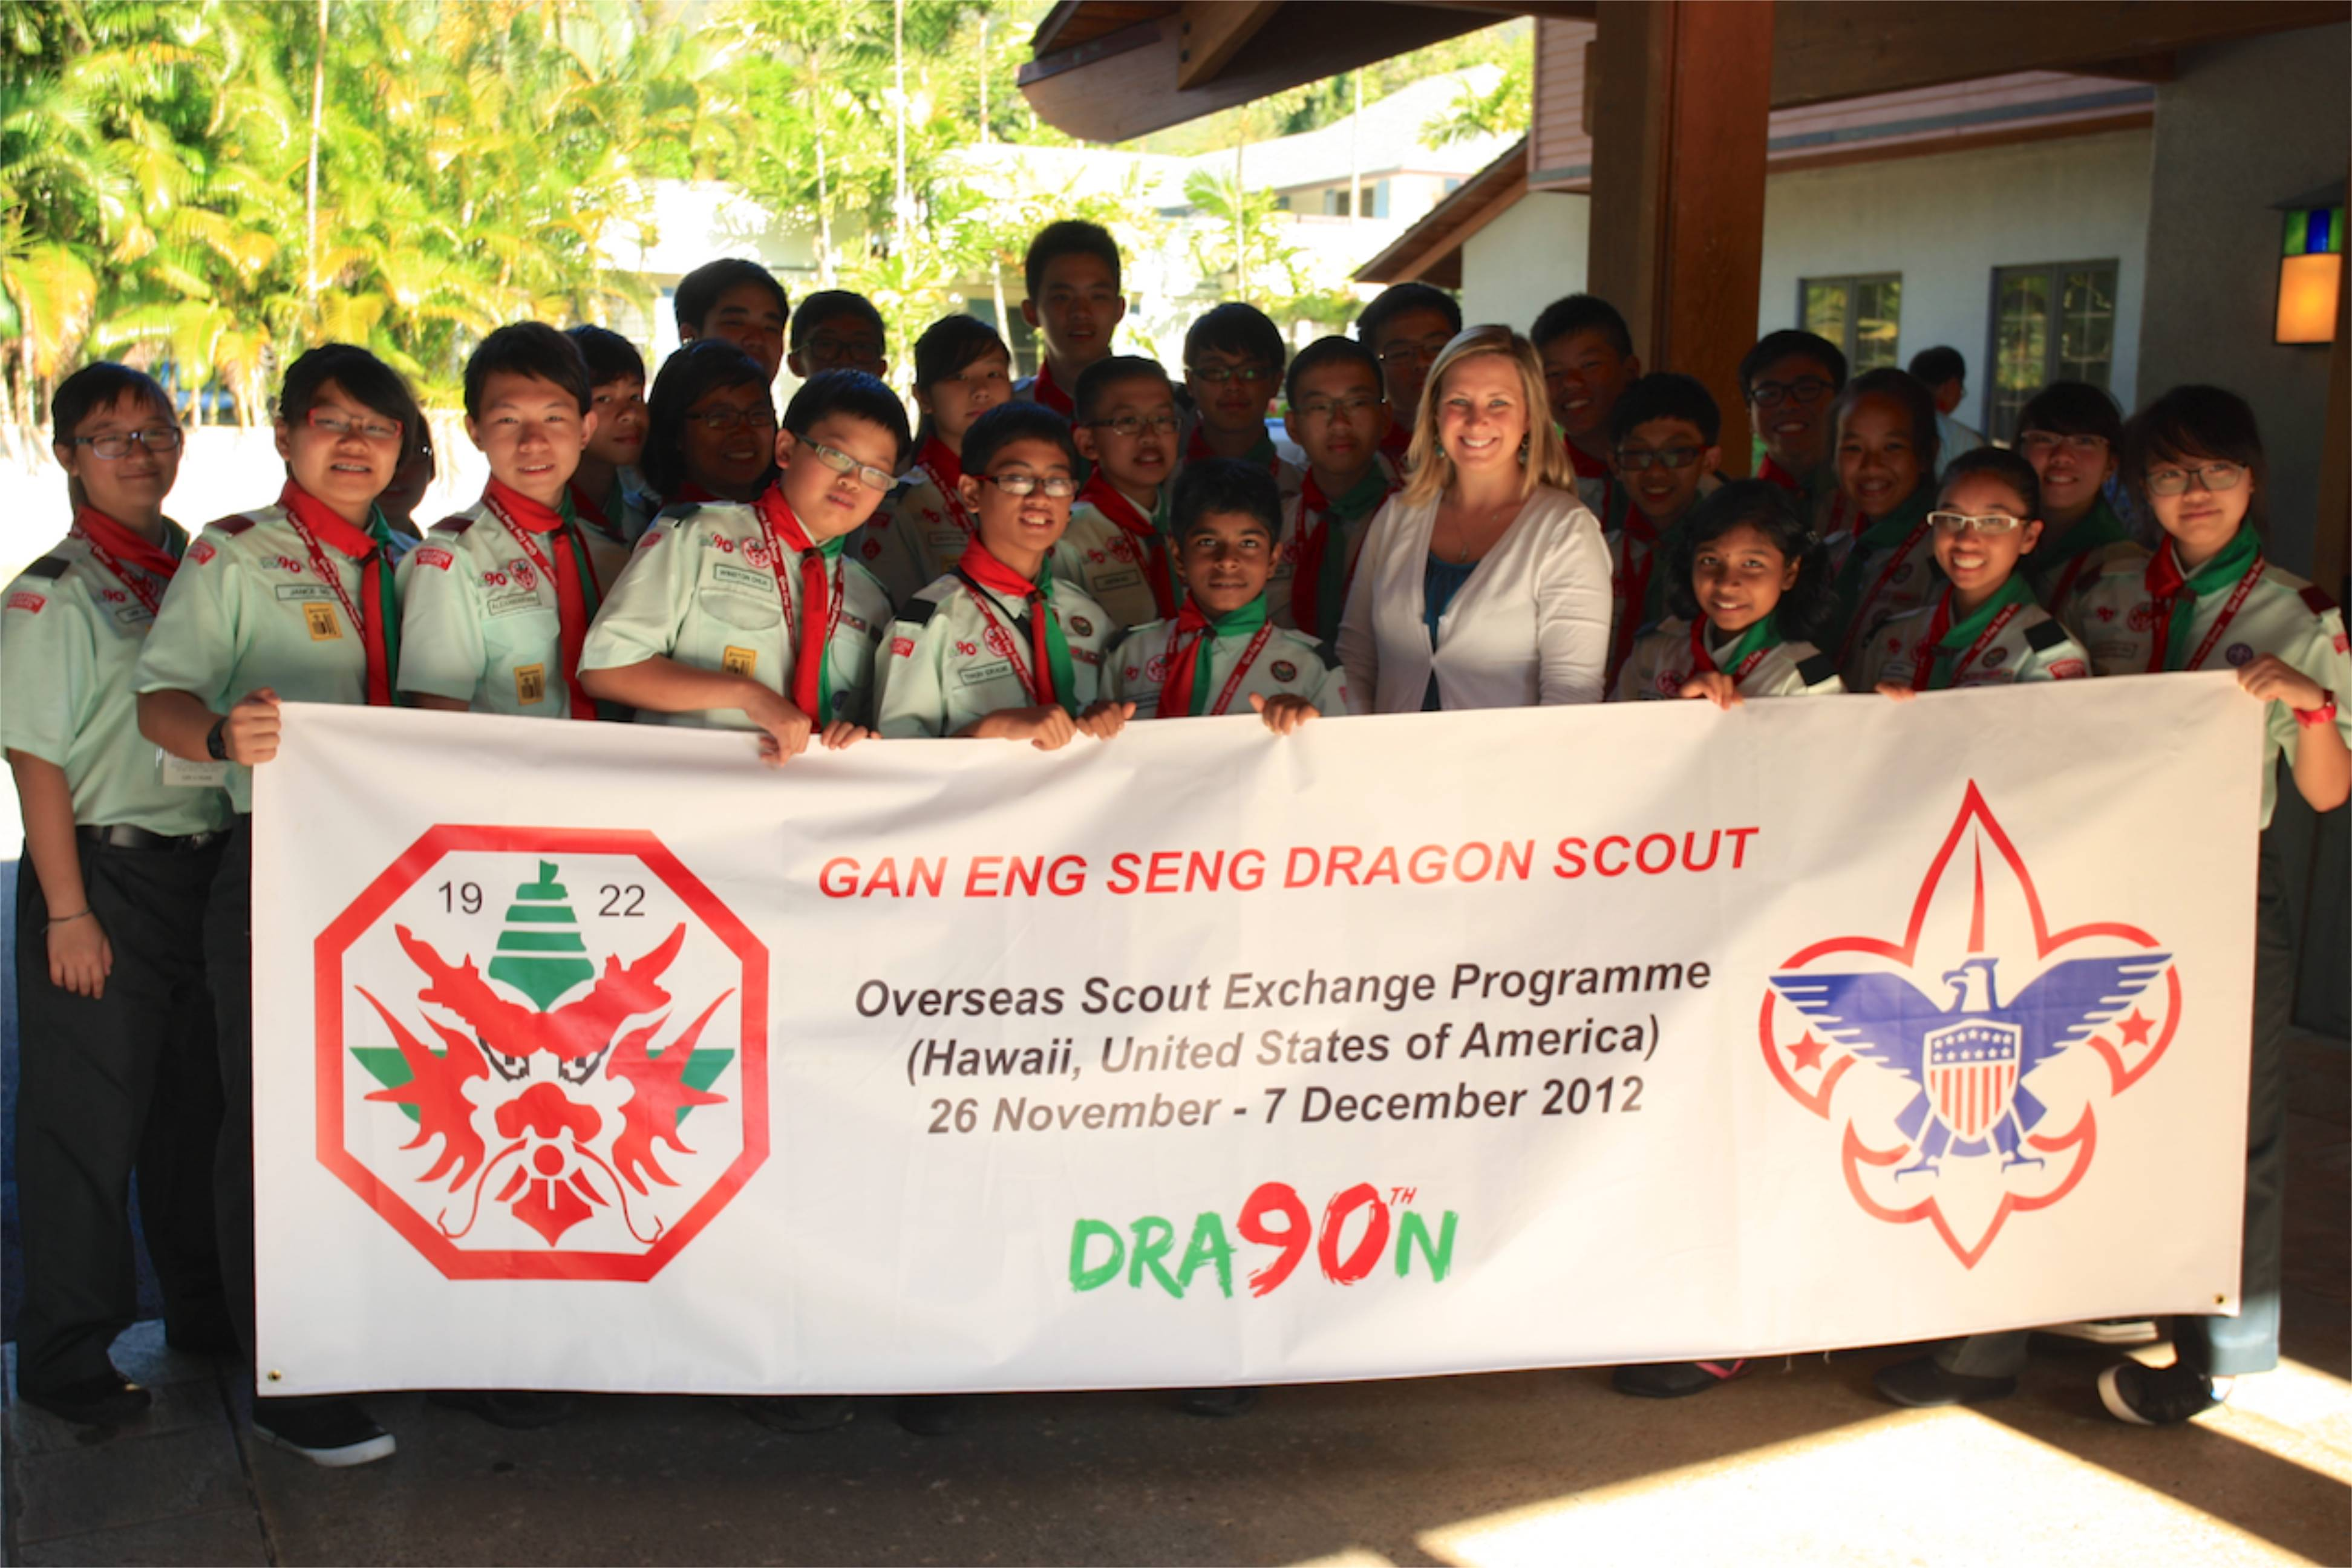 DSG Hawaii Overseas Exchange 2012 Day 4 – A Scouting Exchange